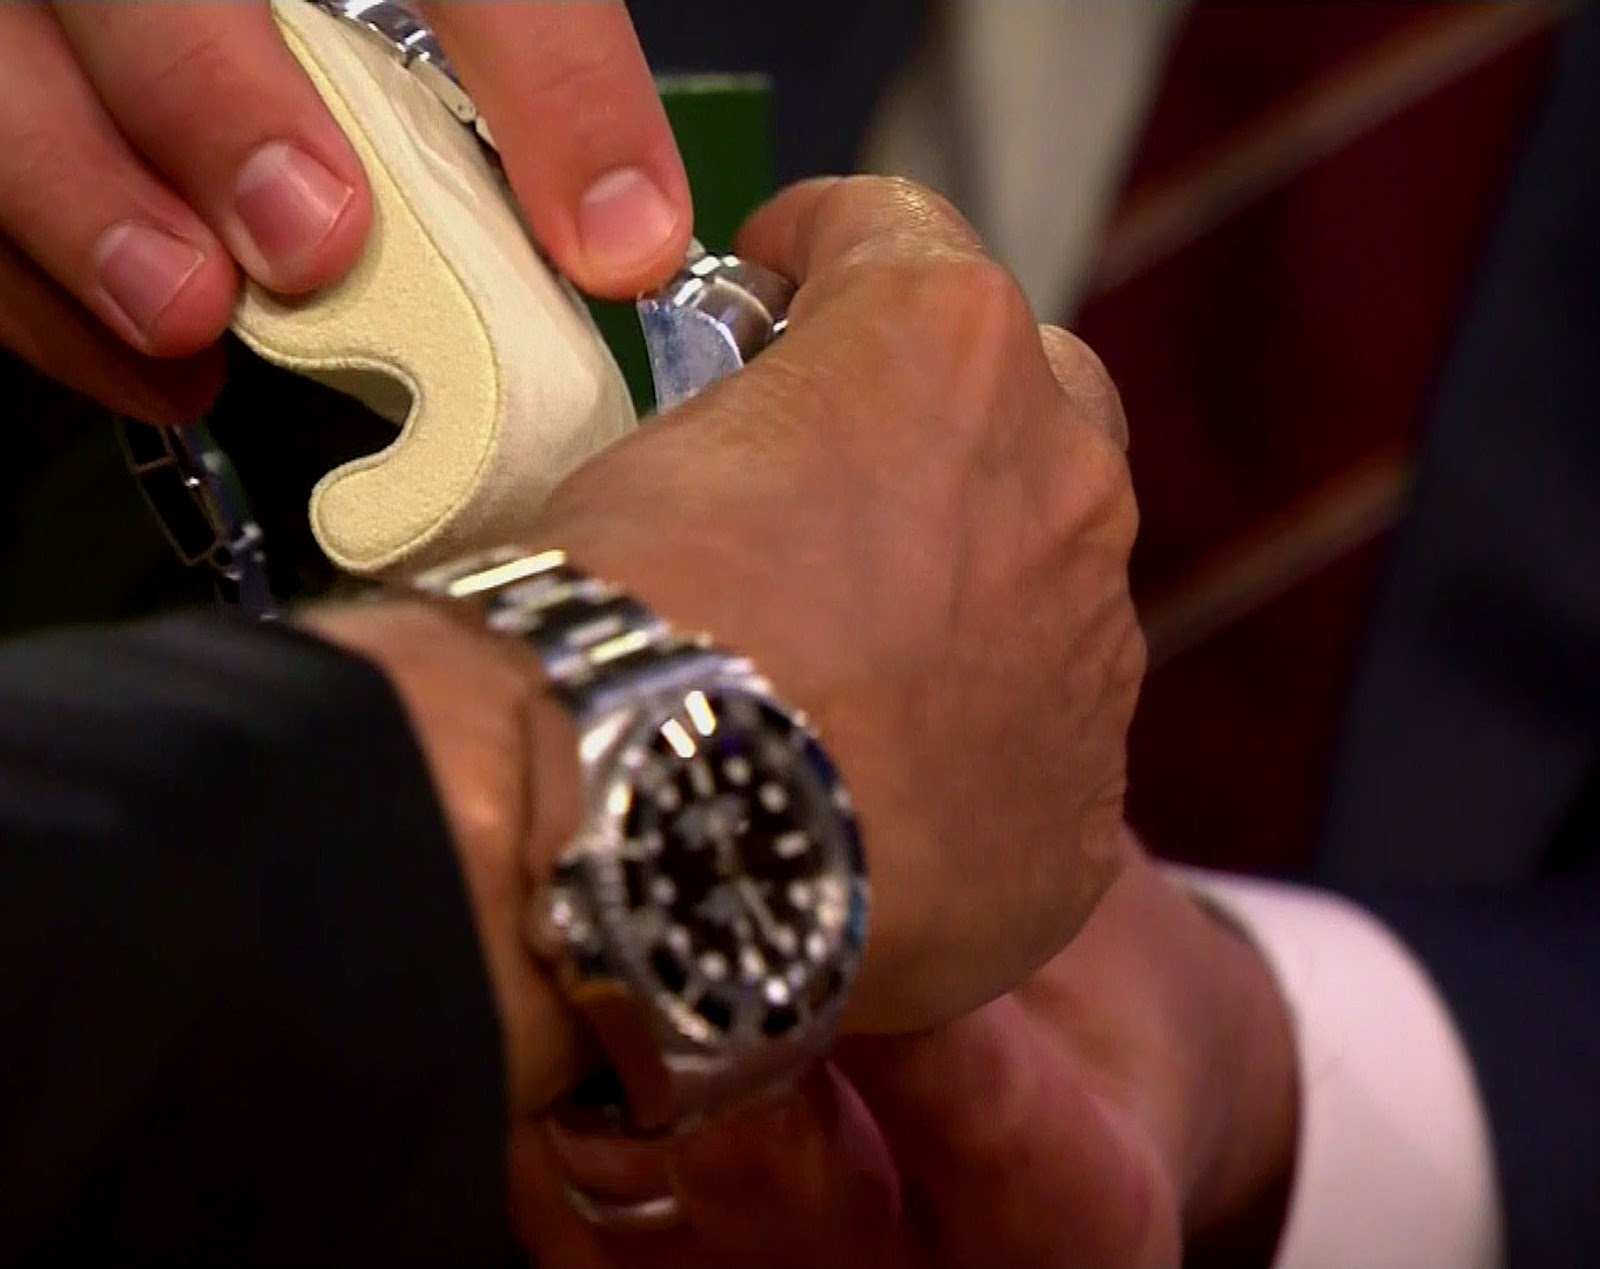 912511c7c20 ... we see Jimmy Fallon comparing the side profiles of the original 1960 Rolex  DEEPSEA Special (left) to the 2012 Rolex DEEPSEA Challenge.